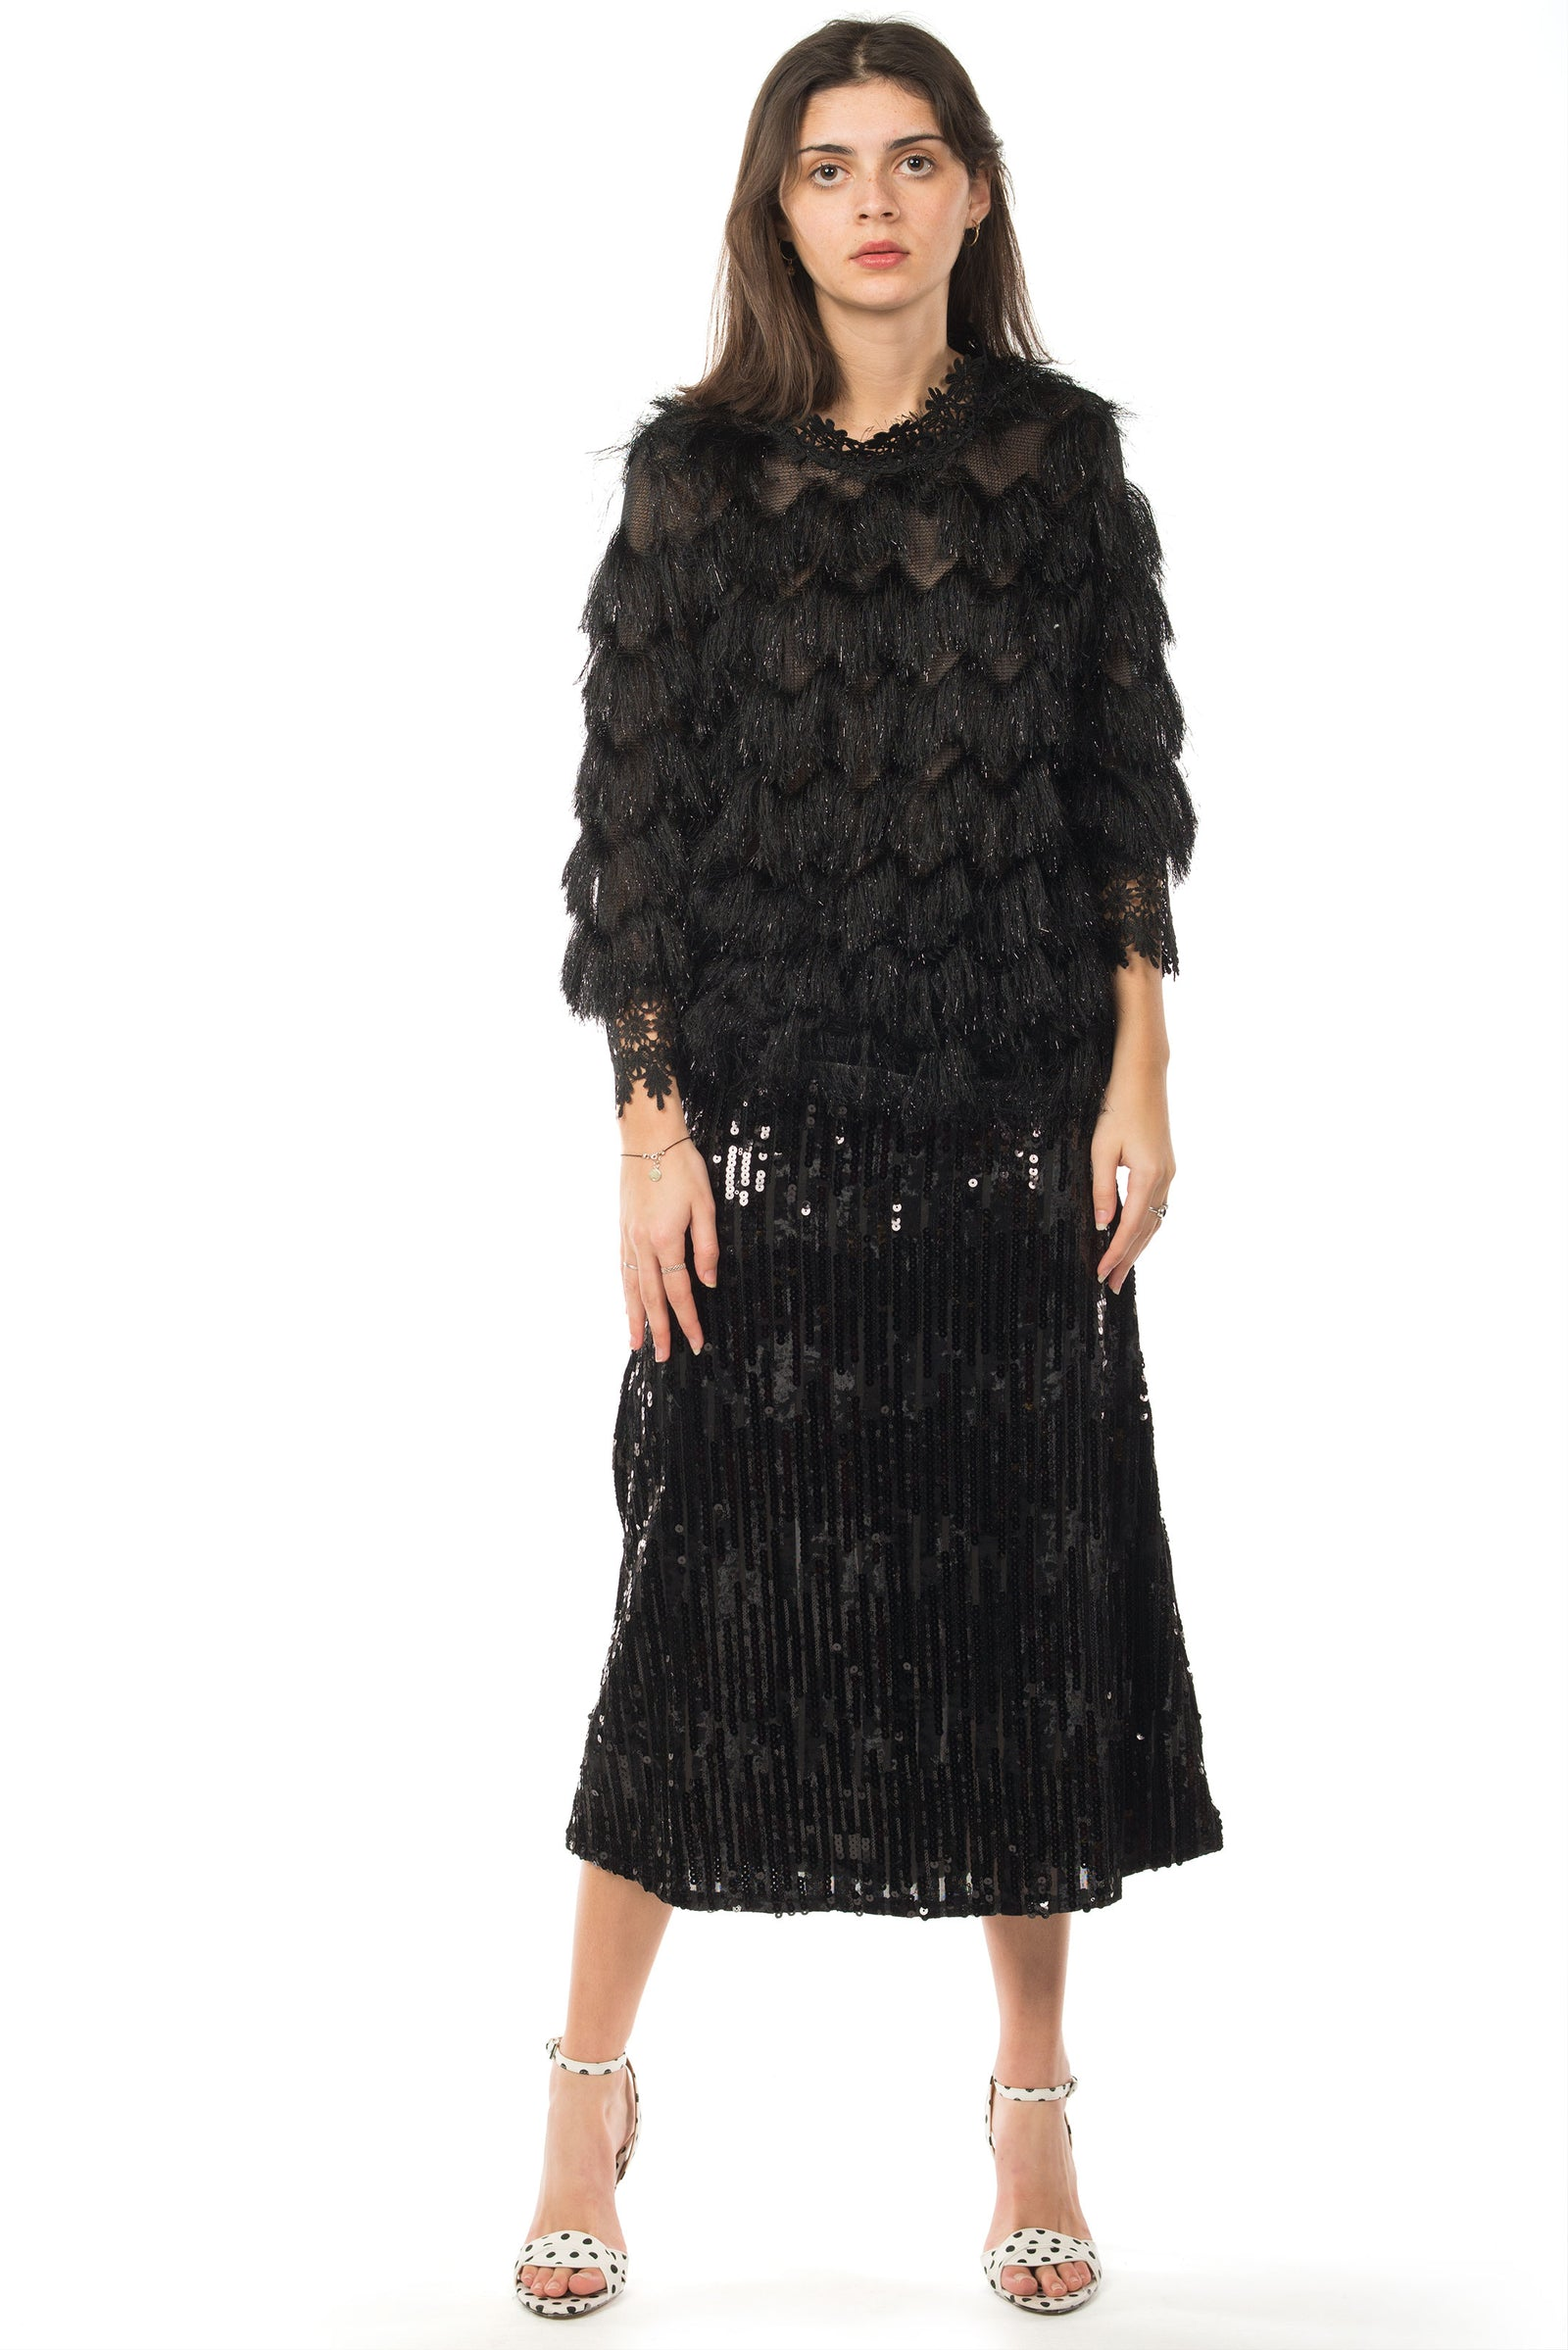 3a58f62ddc0 FRINGE LAYERED BLACK TOP - PLAY MORE HAUS